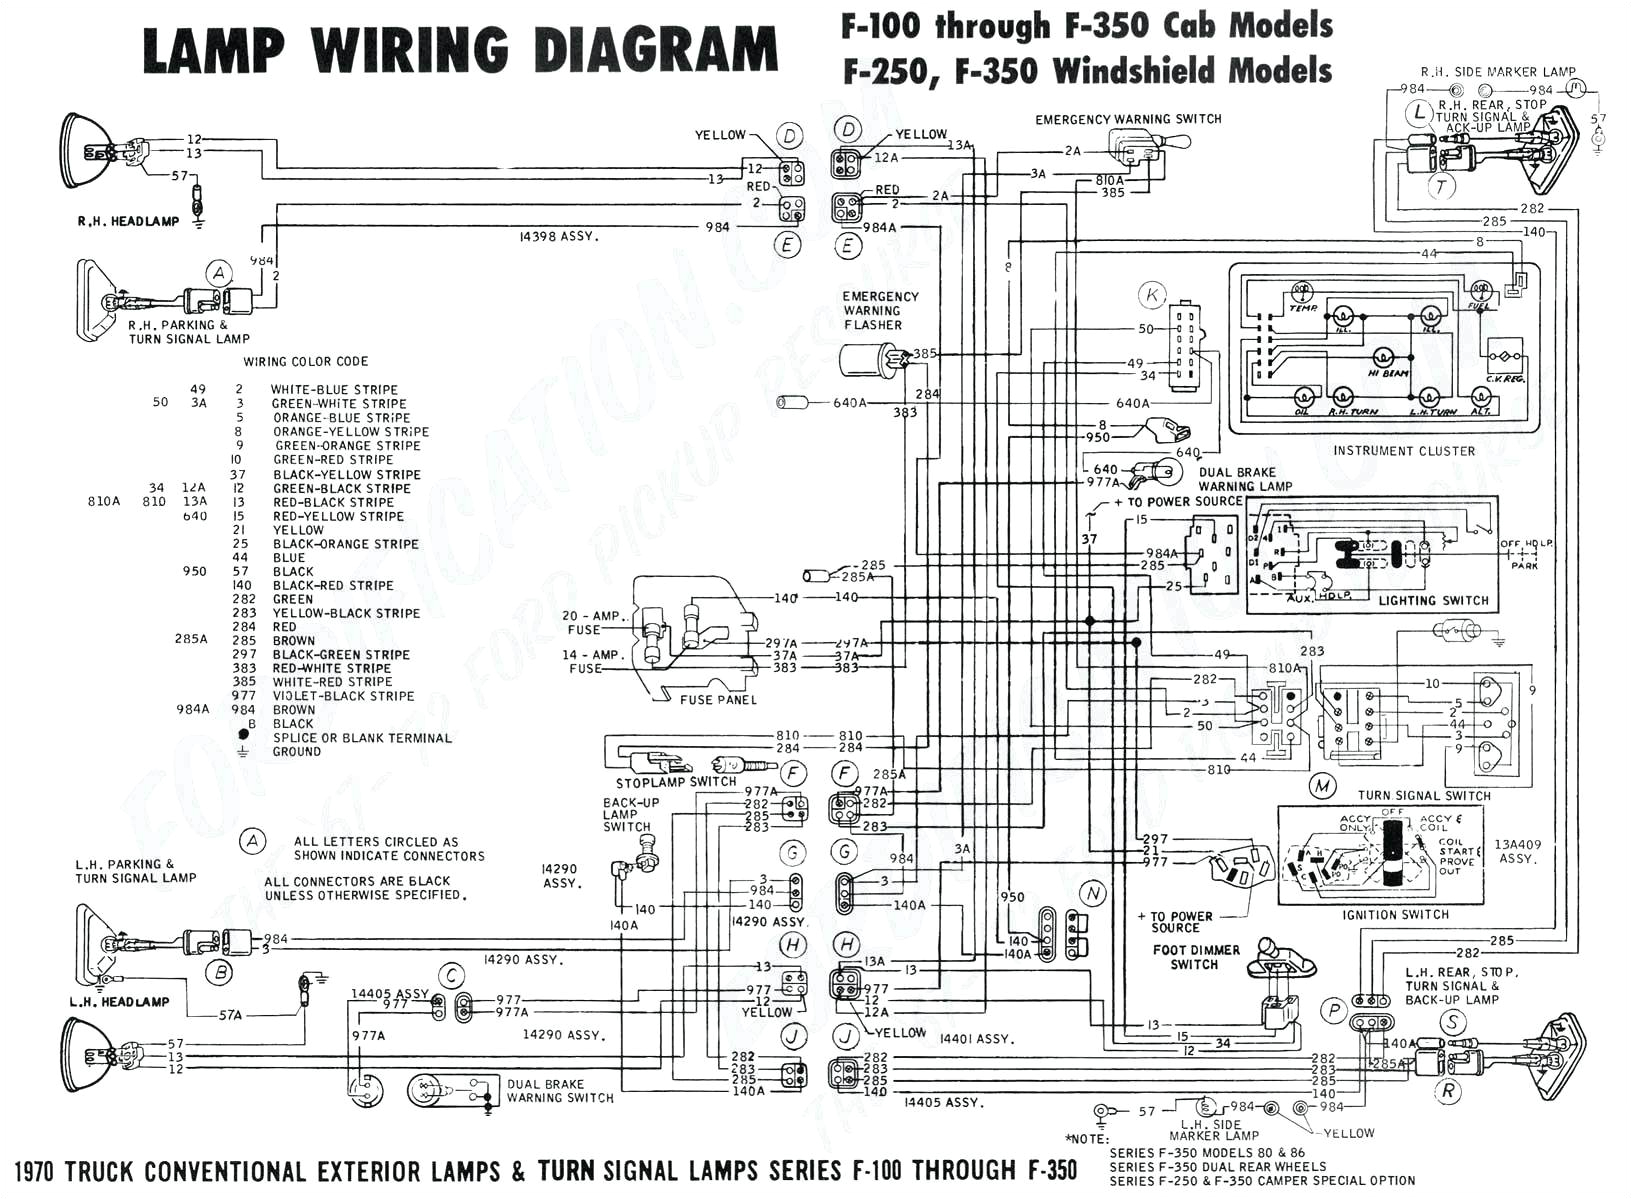 heartland rv wiring diagram collection wiring diagram sample jpg